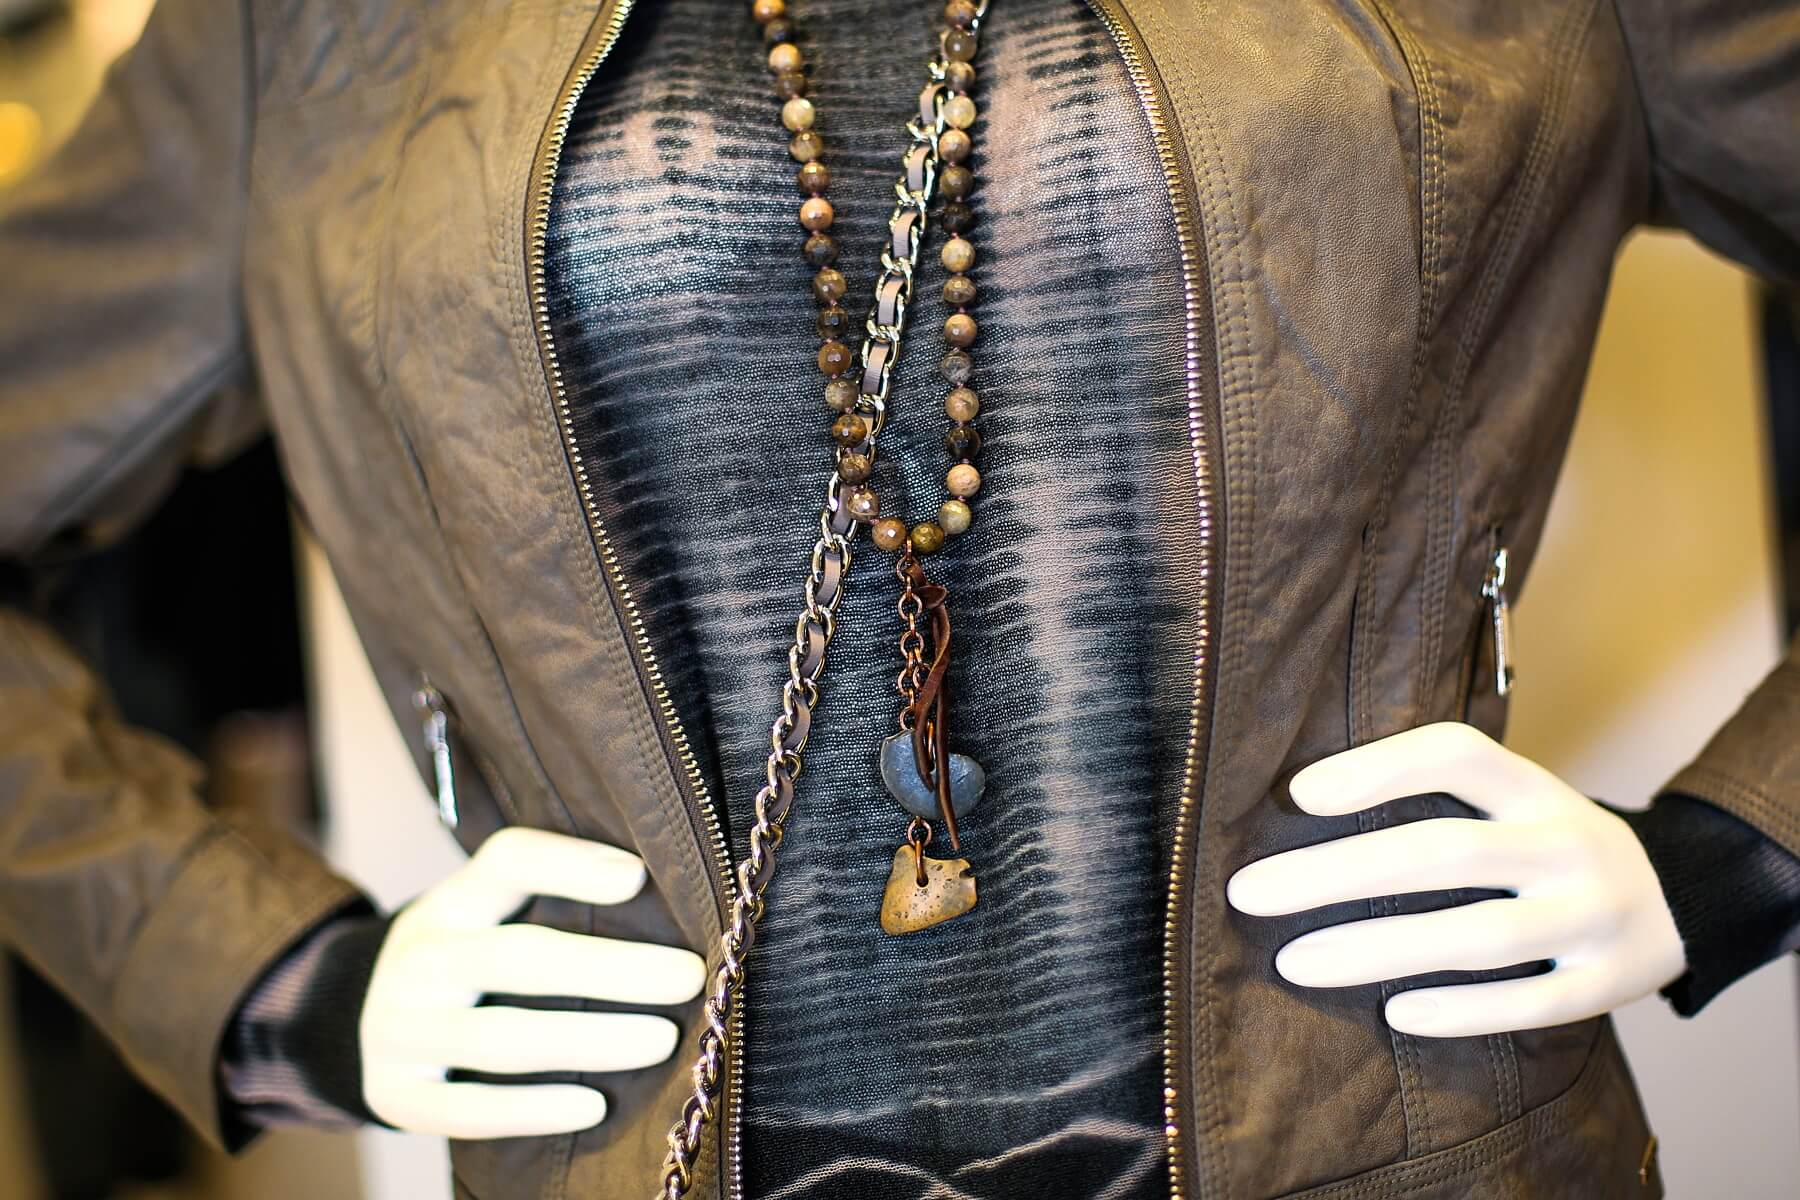 Take a closer look at this intriguing necklace at Gus Mayer.